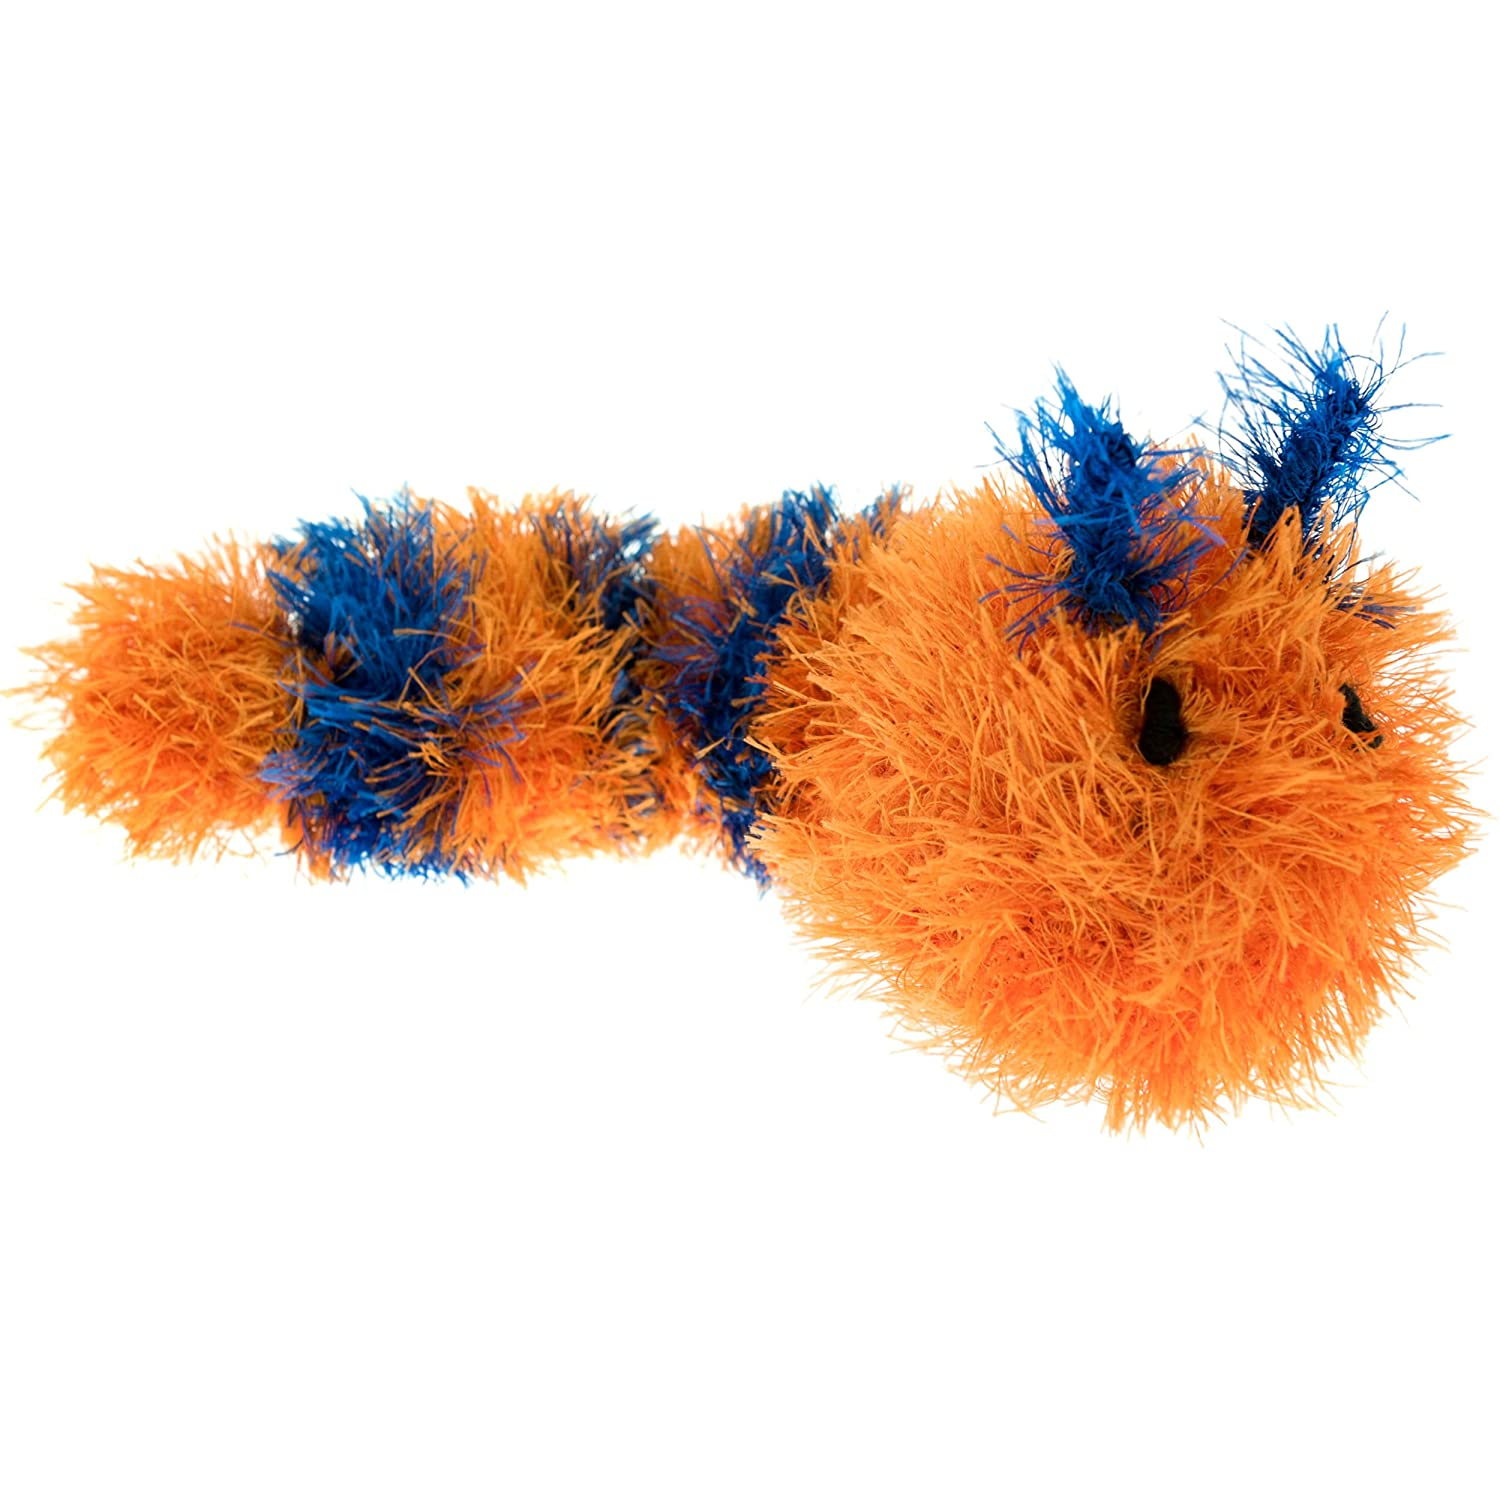 Caterpillar - Medium - Orange